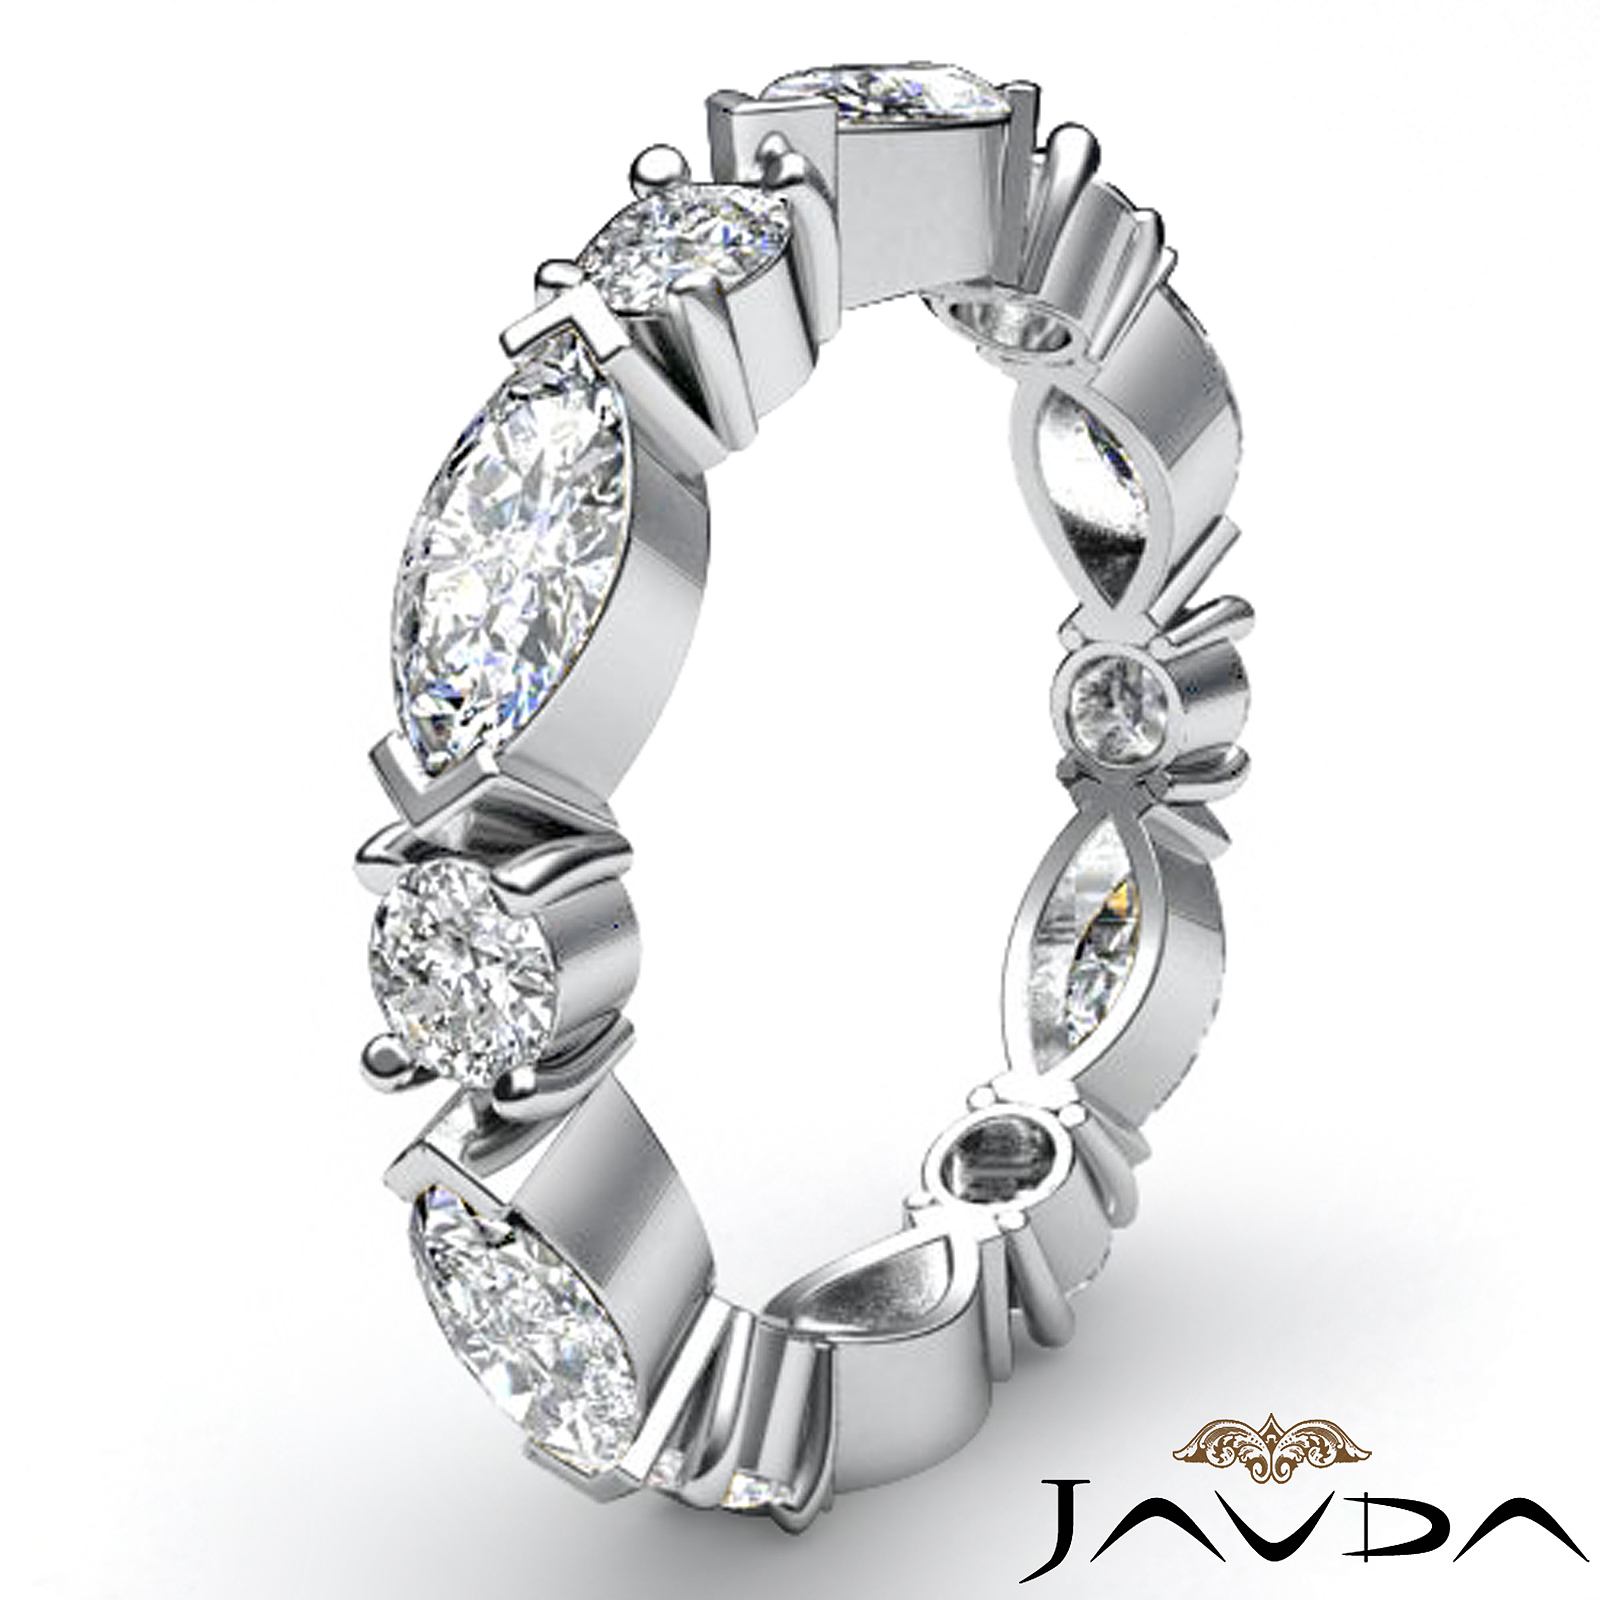 Marquise Ring Bands: Women's Eternity Band Platinum 950 Marquise Round Prong